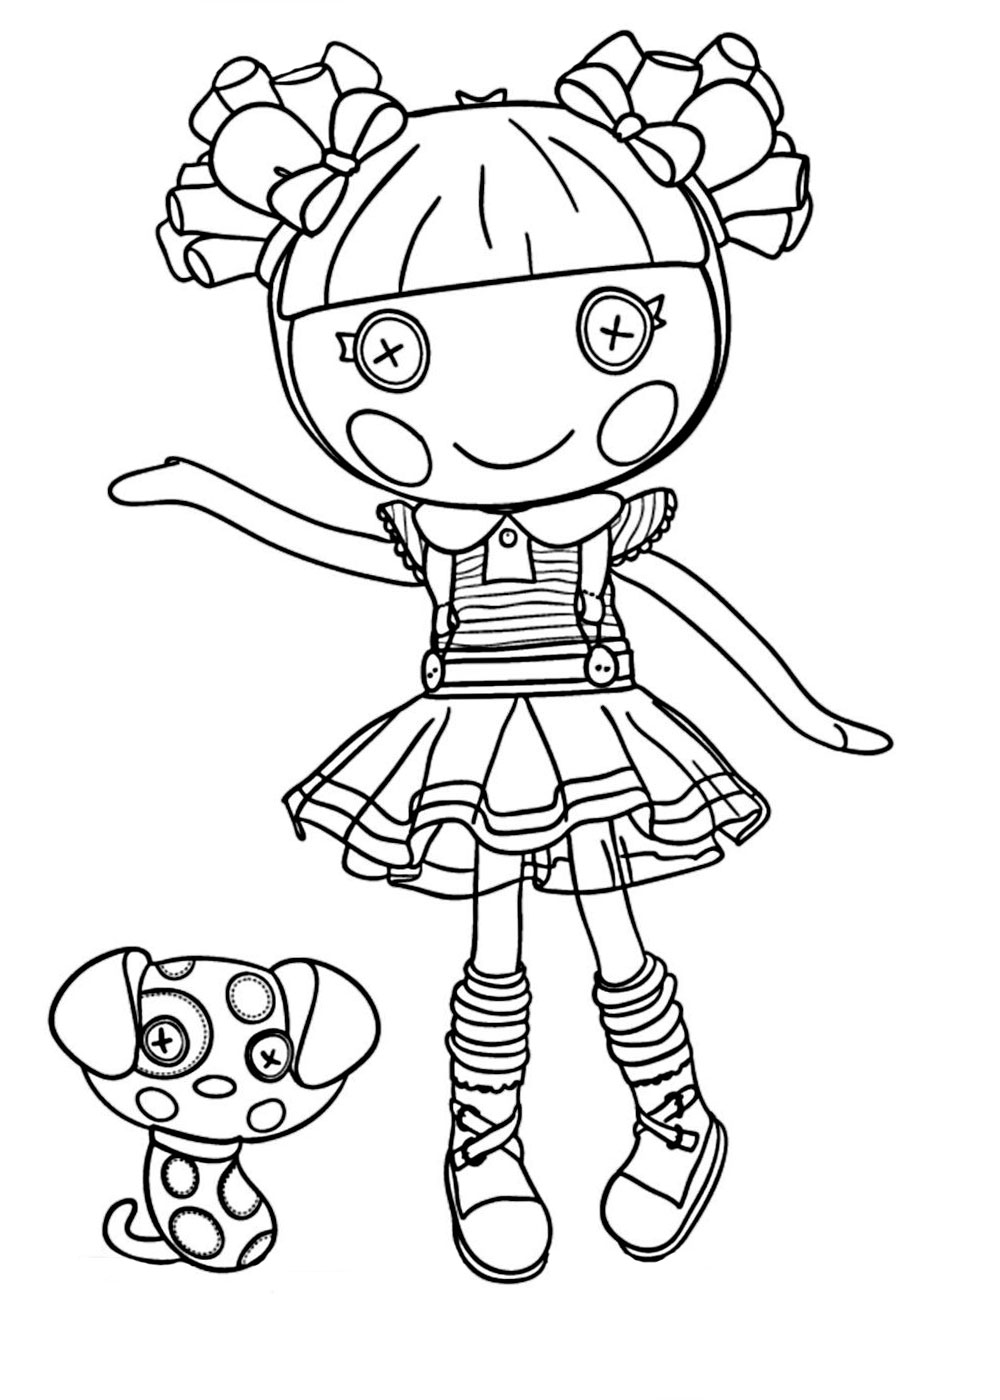 colering pages for girls manga coloring pages to download and print for free for colering girls pages